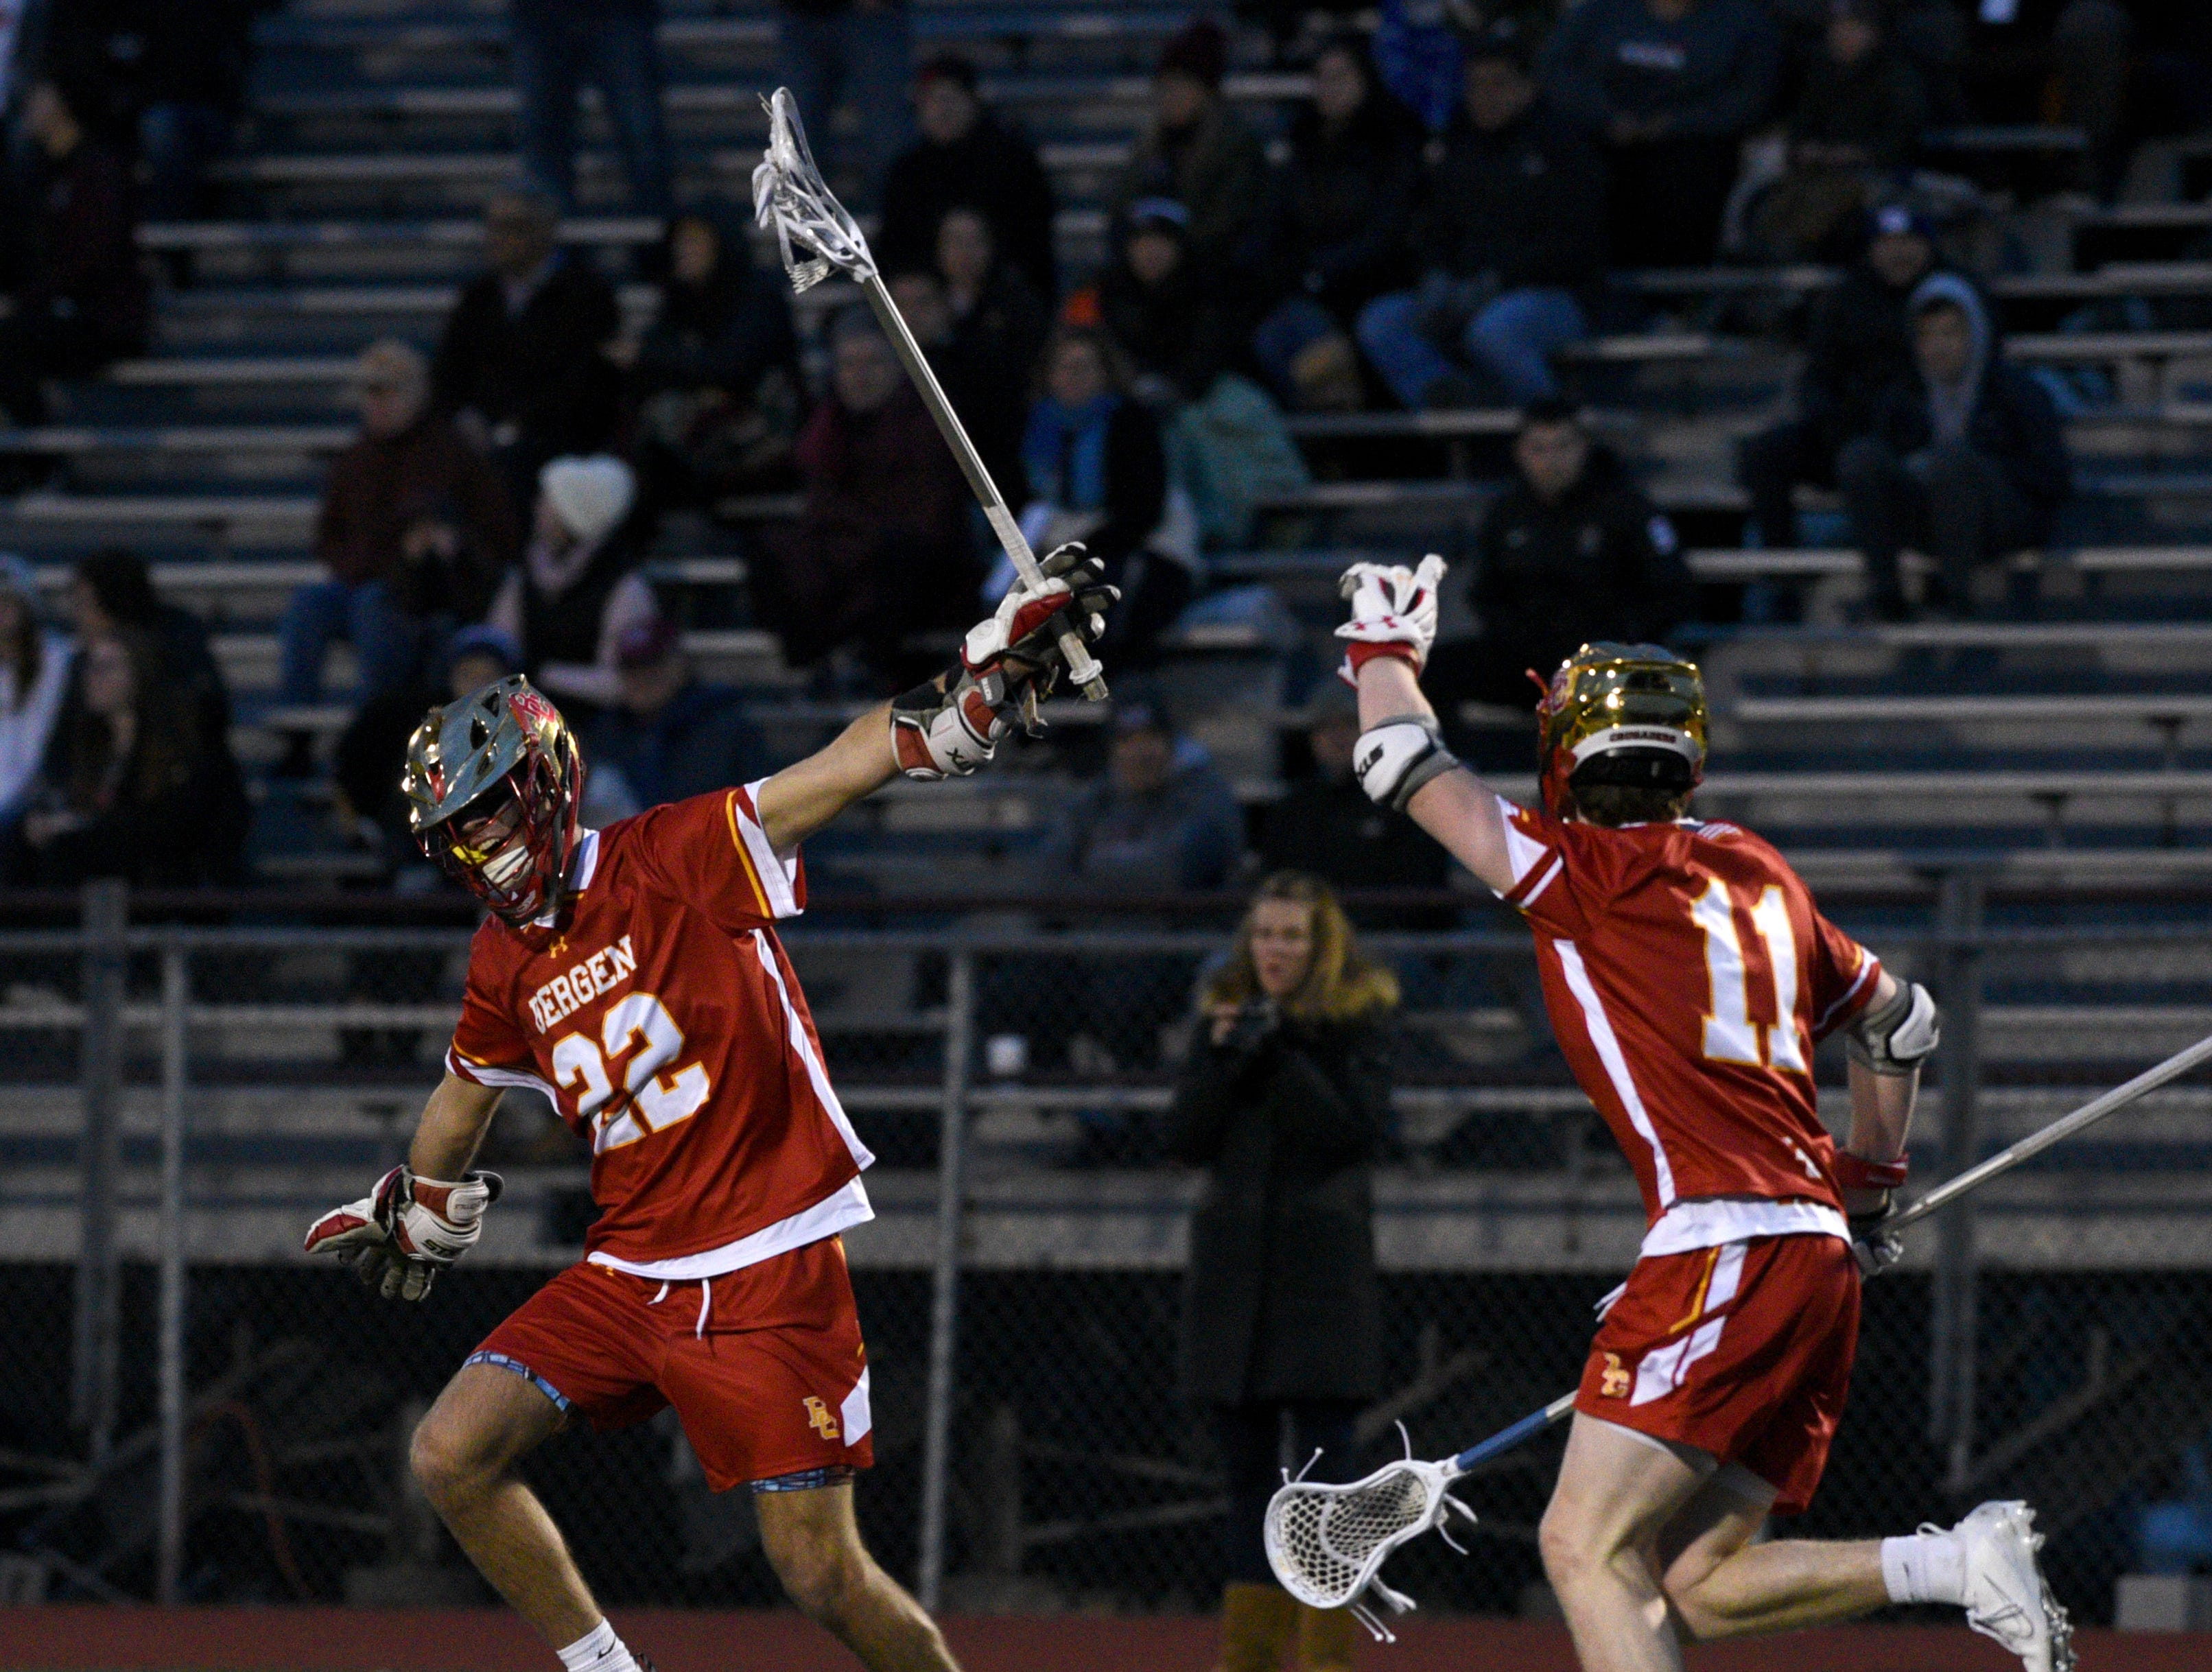 Don Bosco played Bergen Catholic at home in lacrosse on Tuesday, April 2, 2019. Thomas McGee #11 celebrates with Brett Zabransky #22 after McGee scores.